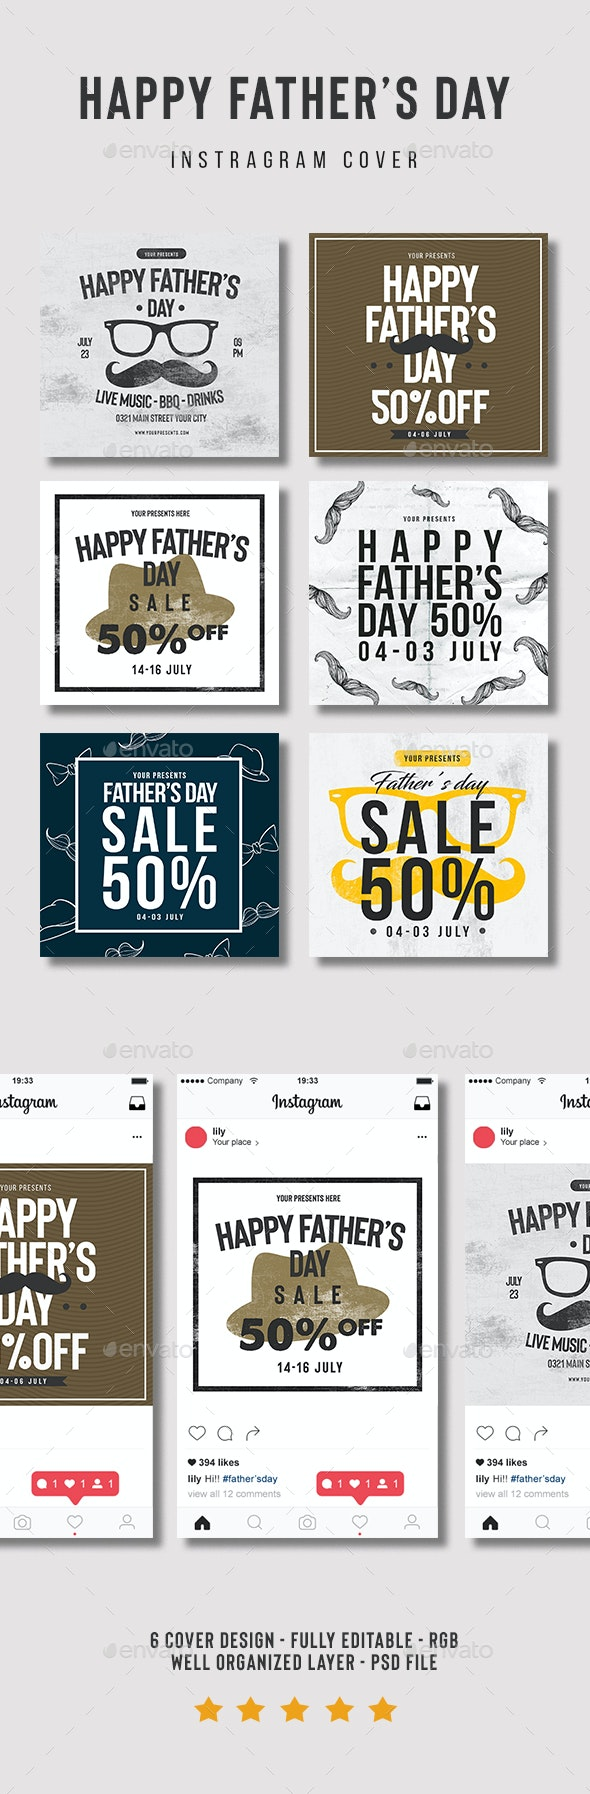 Father's Day Flyer Instagram Cover - Social Media Web Elements